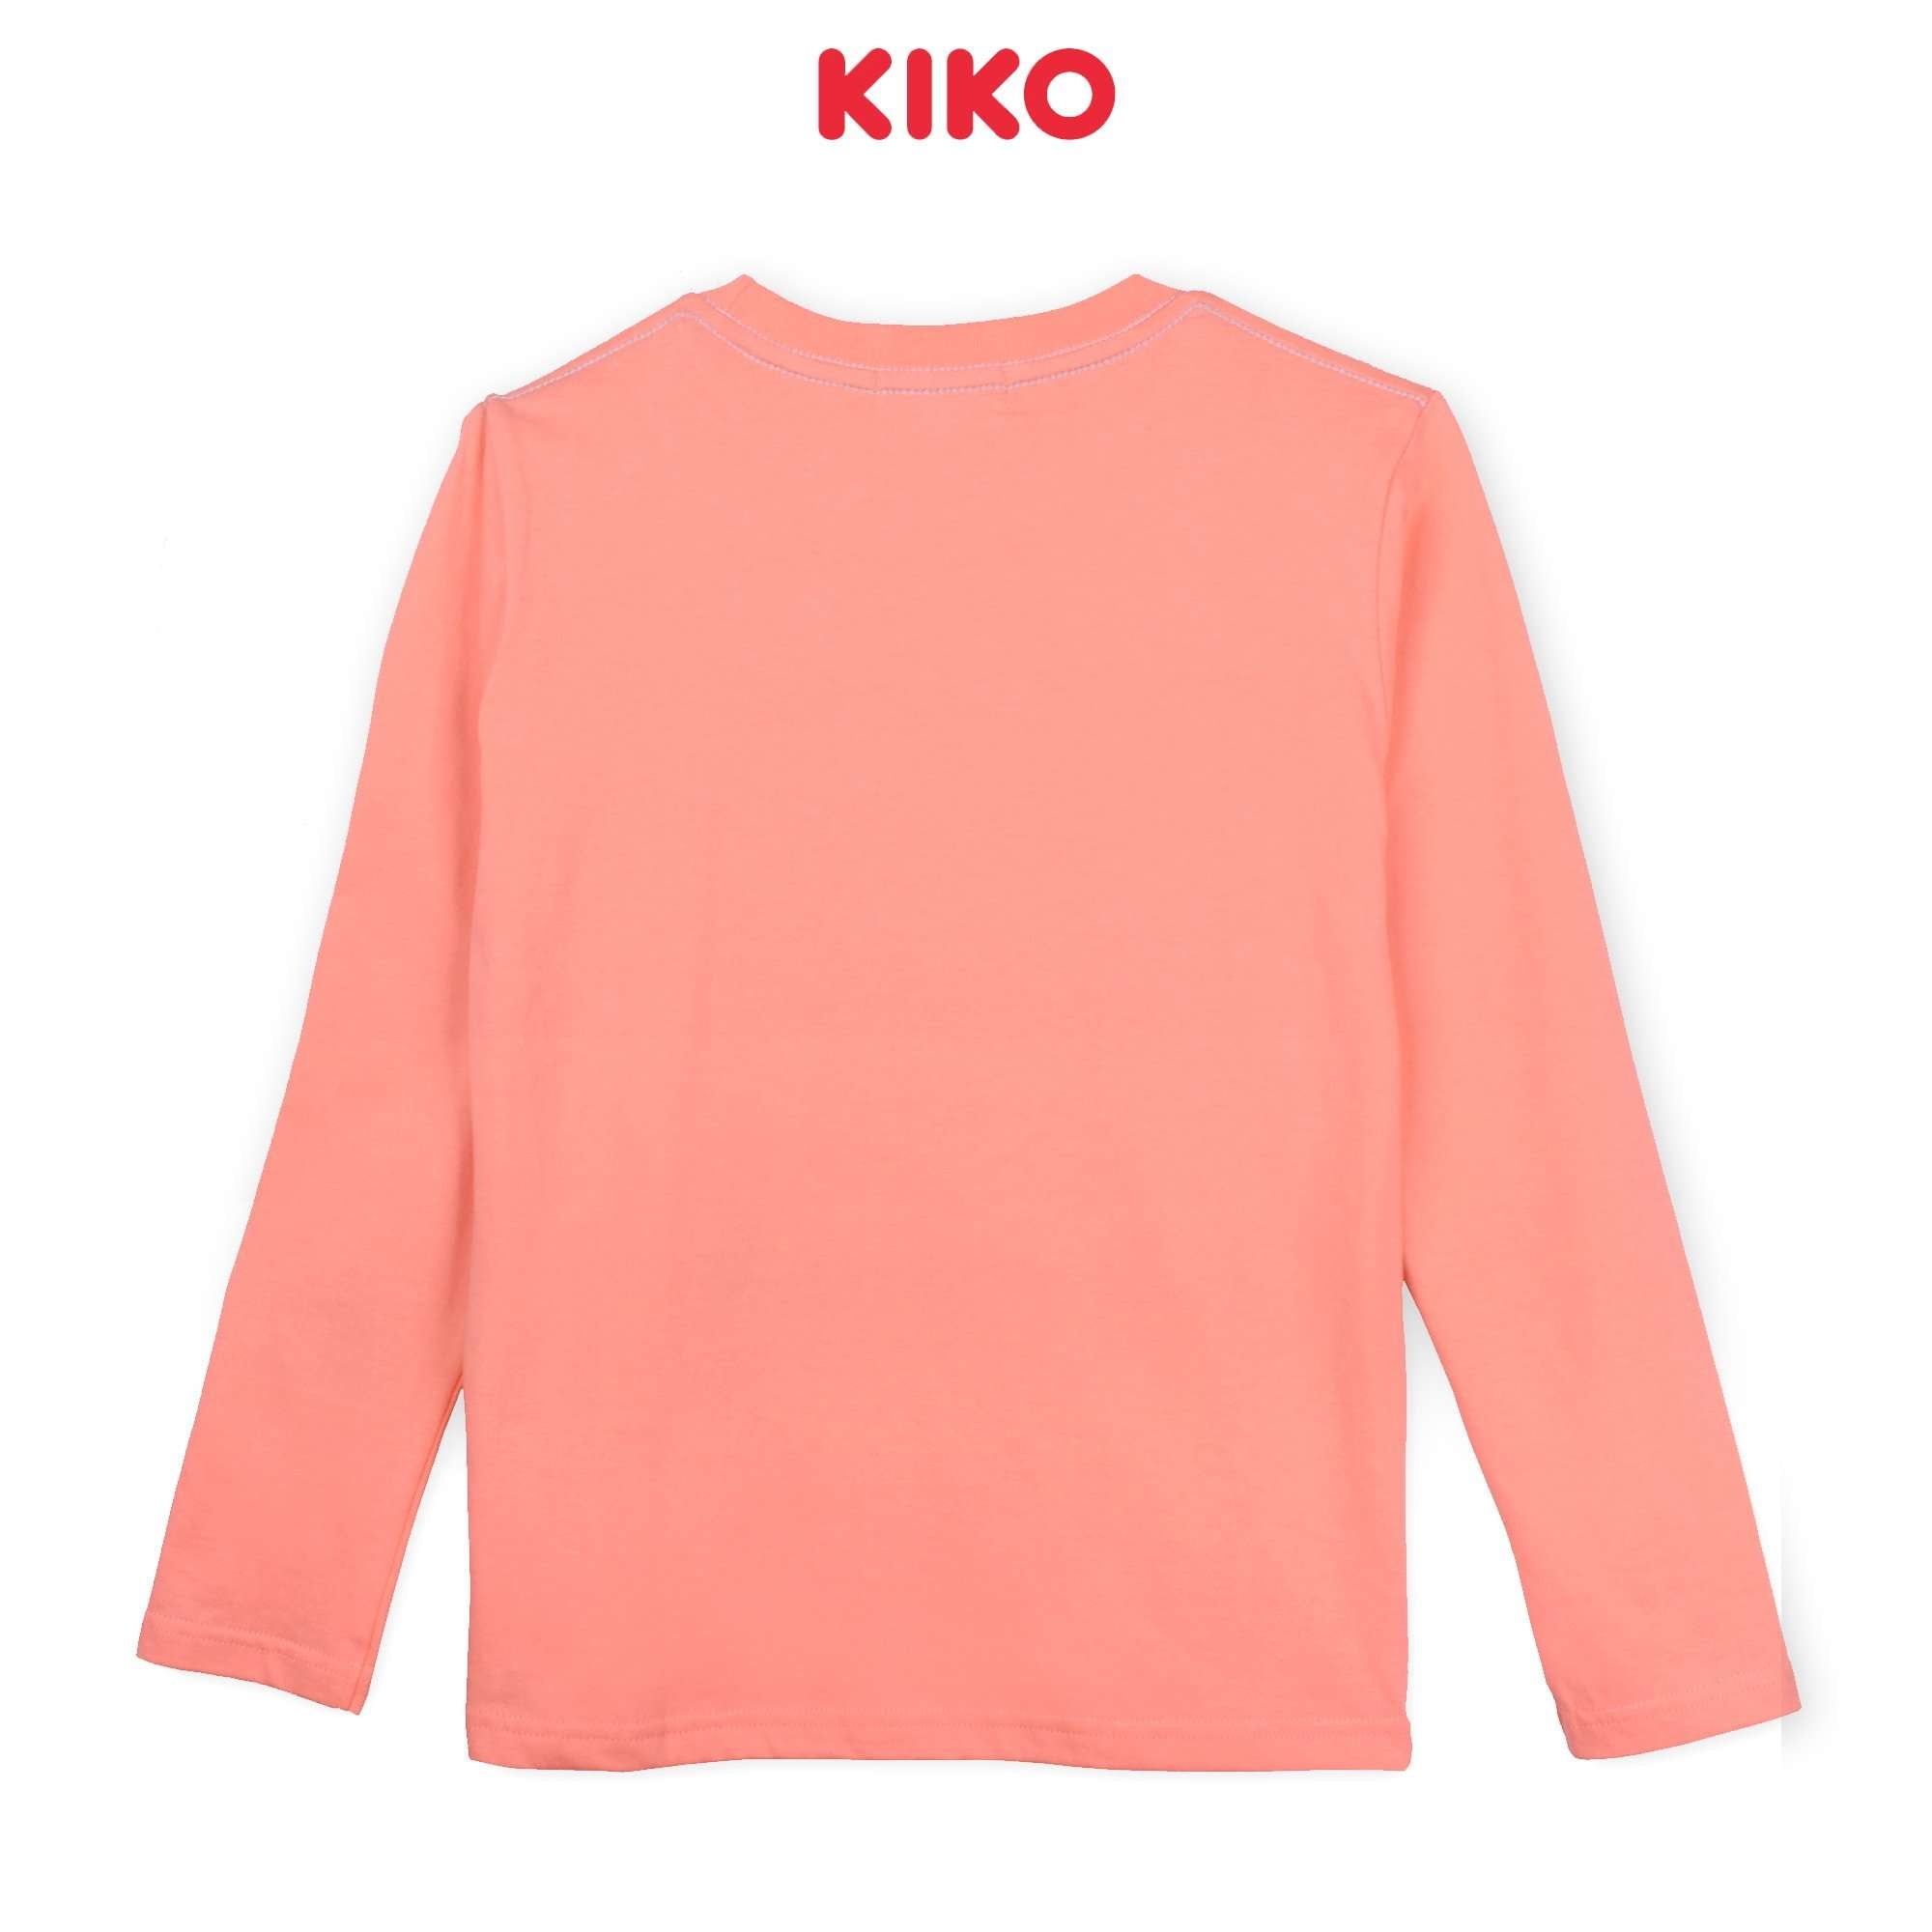 KIKO Boy Long Sleeve Tee - Orange  K923103-1313-E5 : Buy KIKO online at CMG.MY